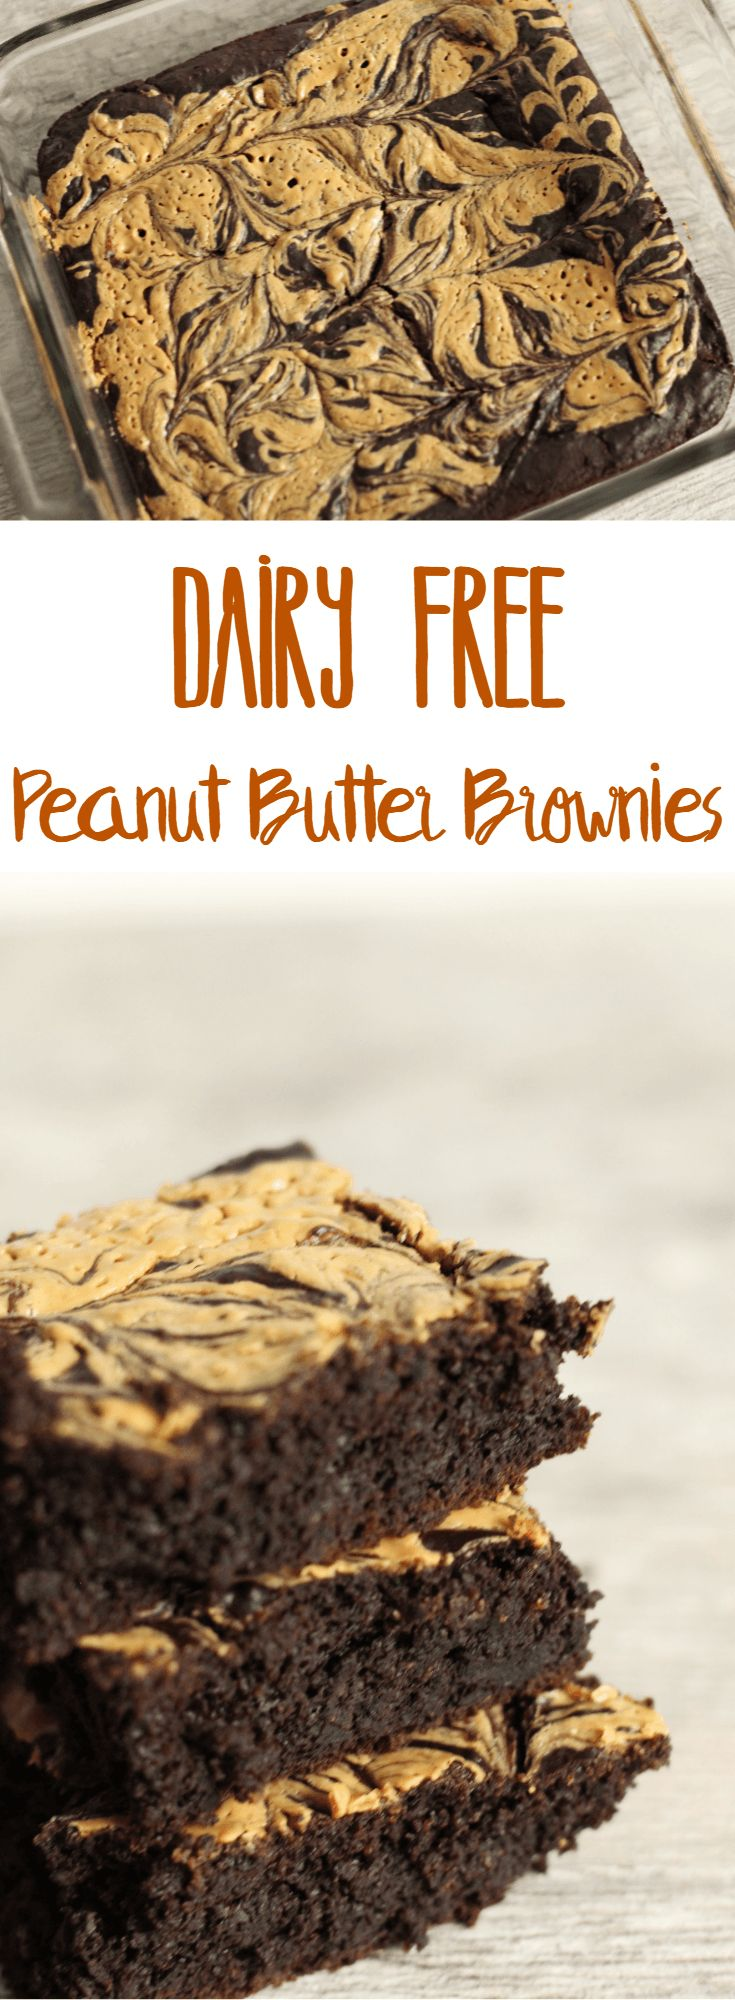 Chocolate and peanut butter are the perfect match in these dairy free peanut butter brownies that are also gluten free! All you need is the list of ingredients, a baking pan, and a food processor to whip these brownies up.